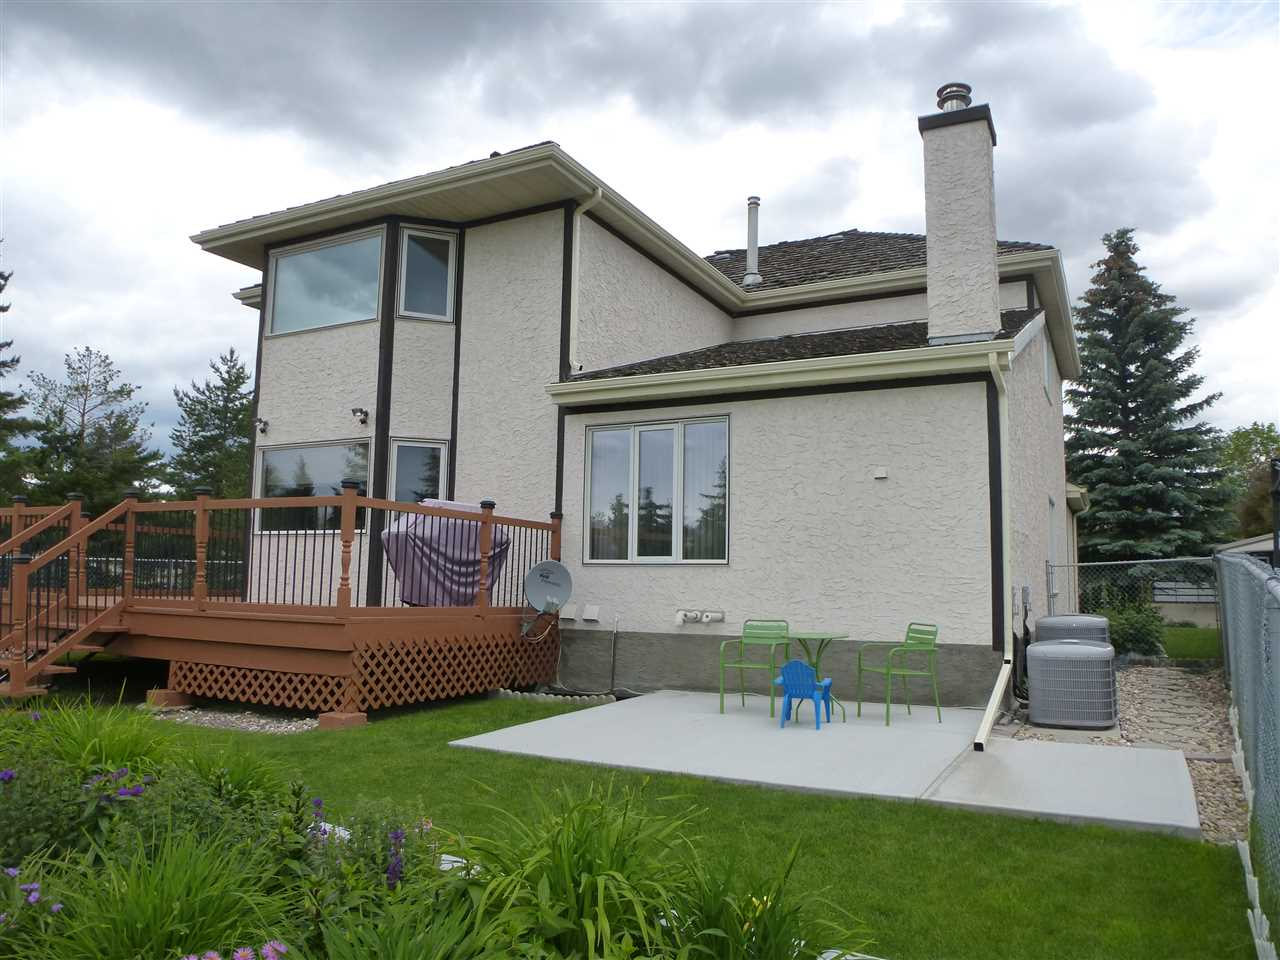 Photo 4: 315 ORMSBY Road in Edmonton: Zone 20 House for sale : MLS(r) # E4059577